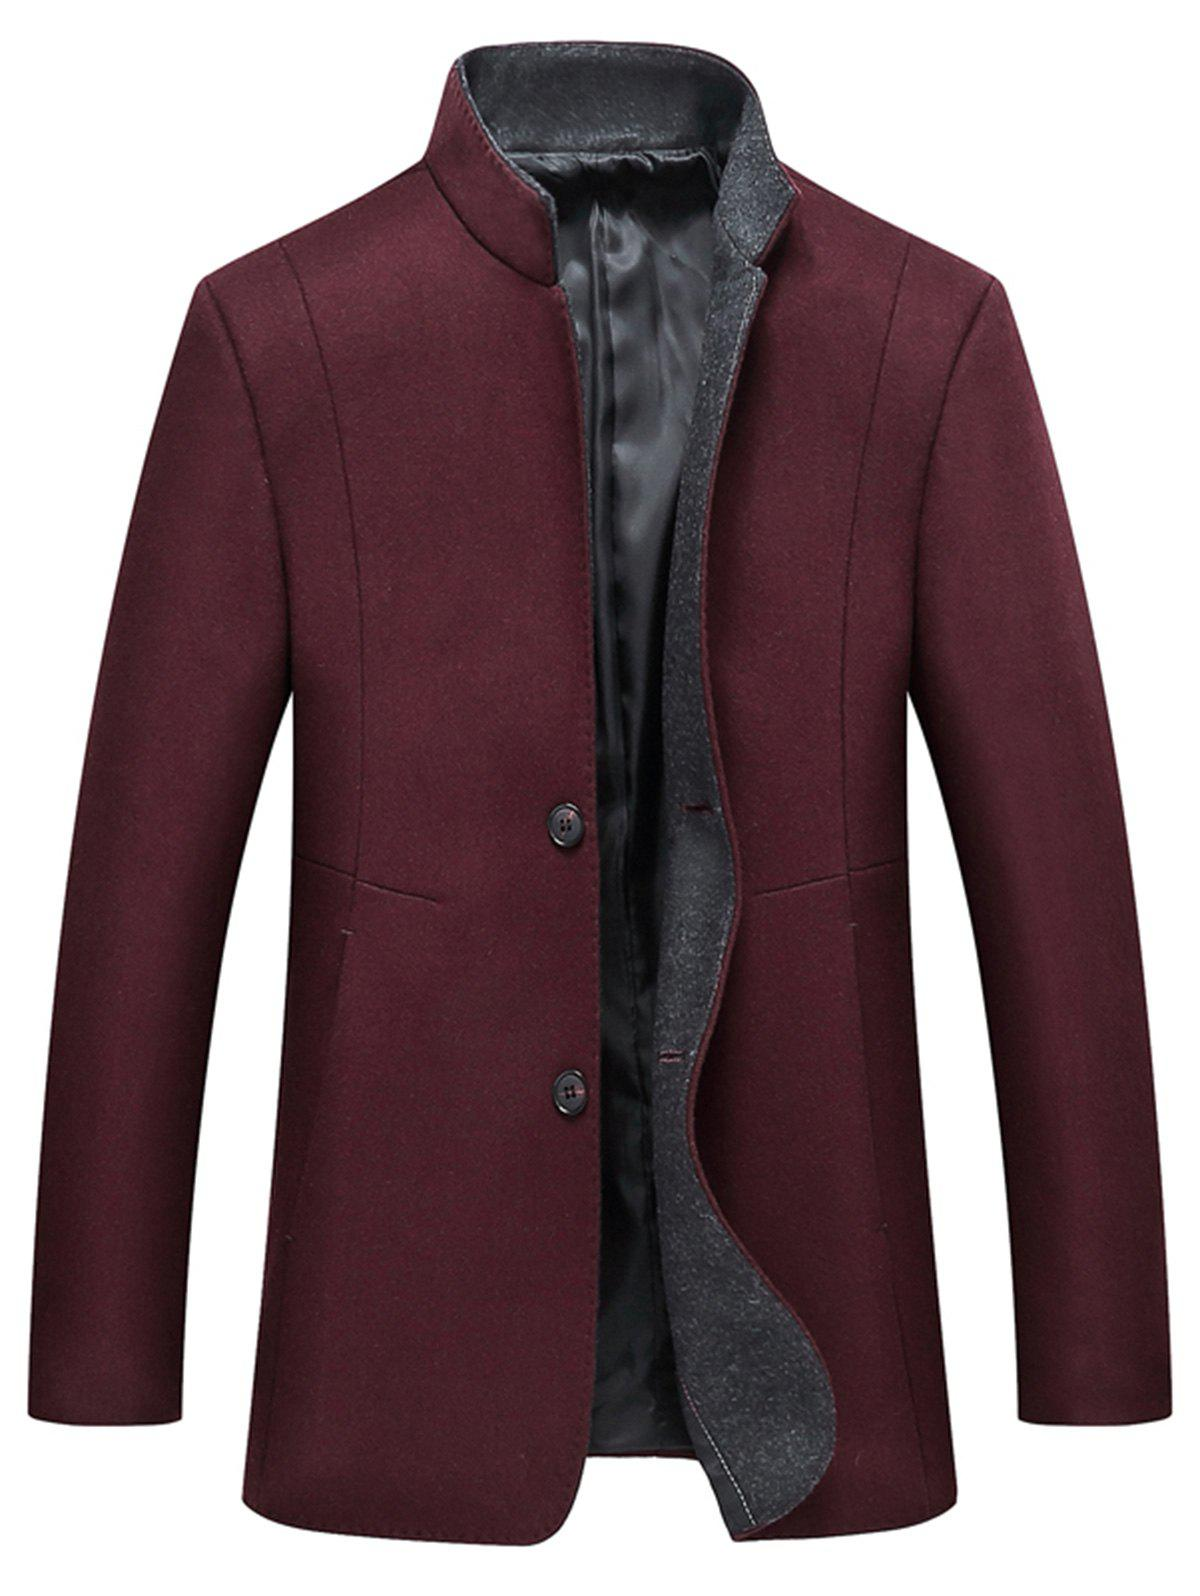 Chic Grandad Collar Coat with Side Pockets